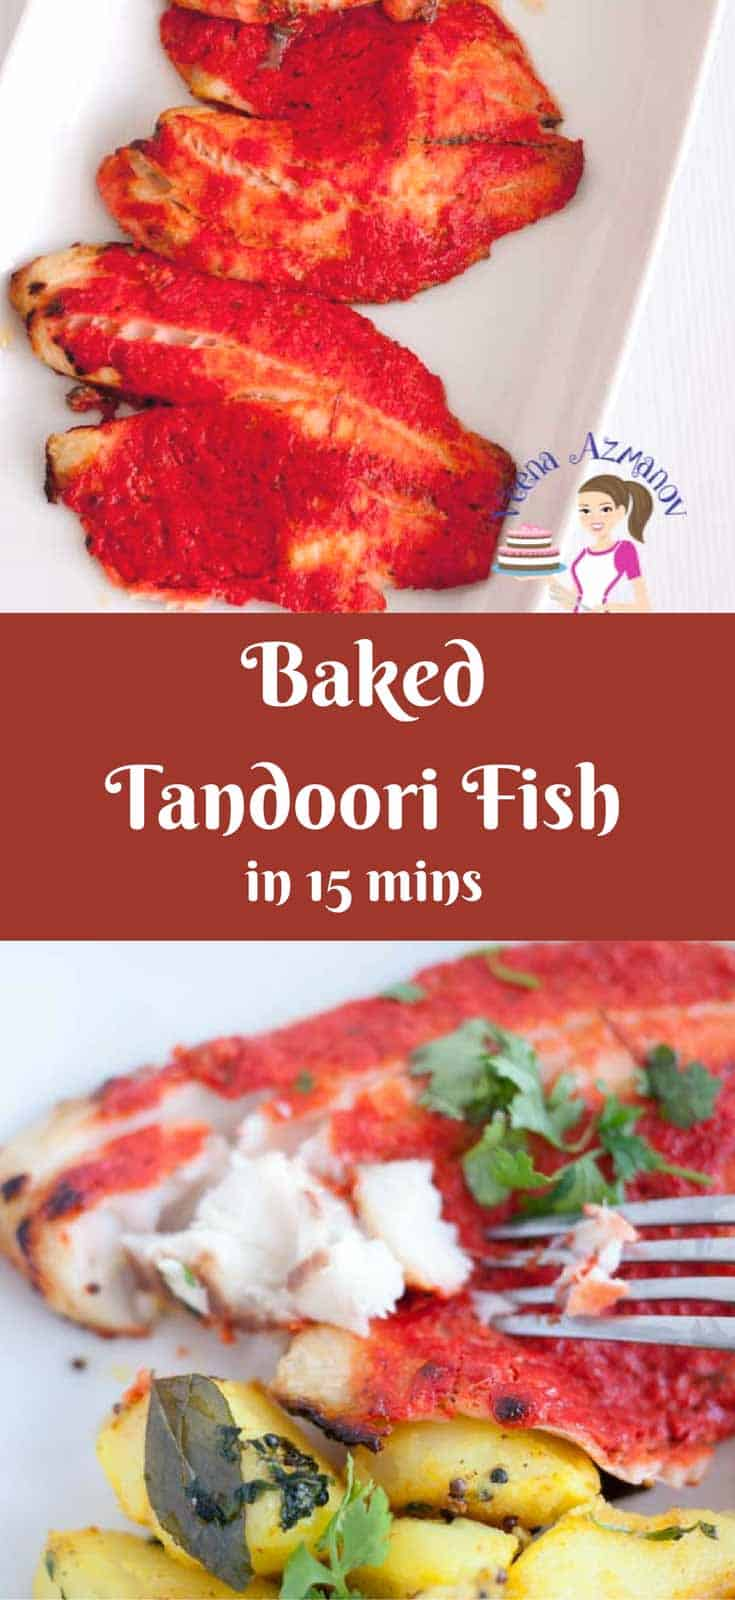 A Pinterest Image showing the Fish Tandoori baked to 15 mins. Top image showing the three fish fillets and bottom with a flaked fish flesh for the inside.